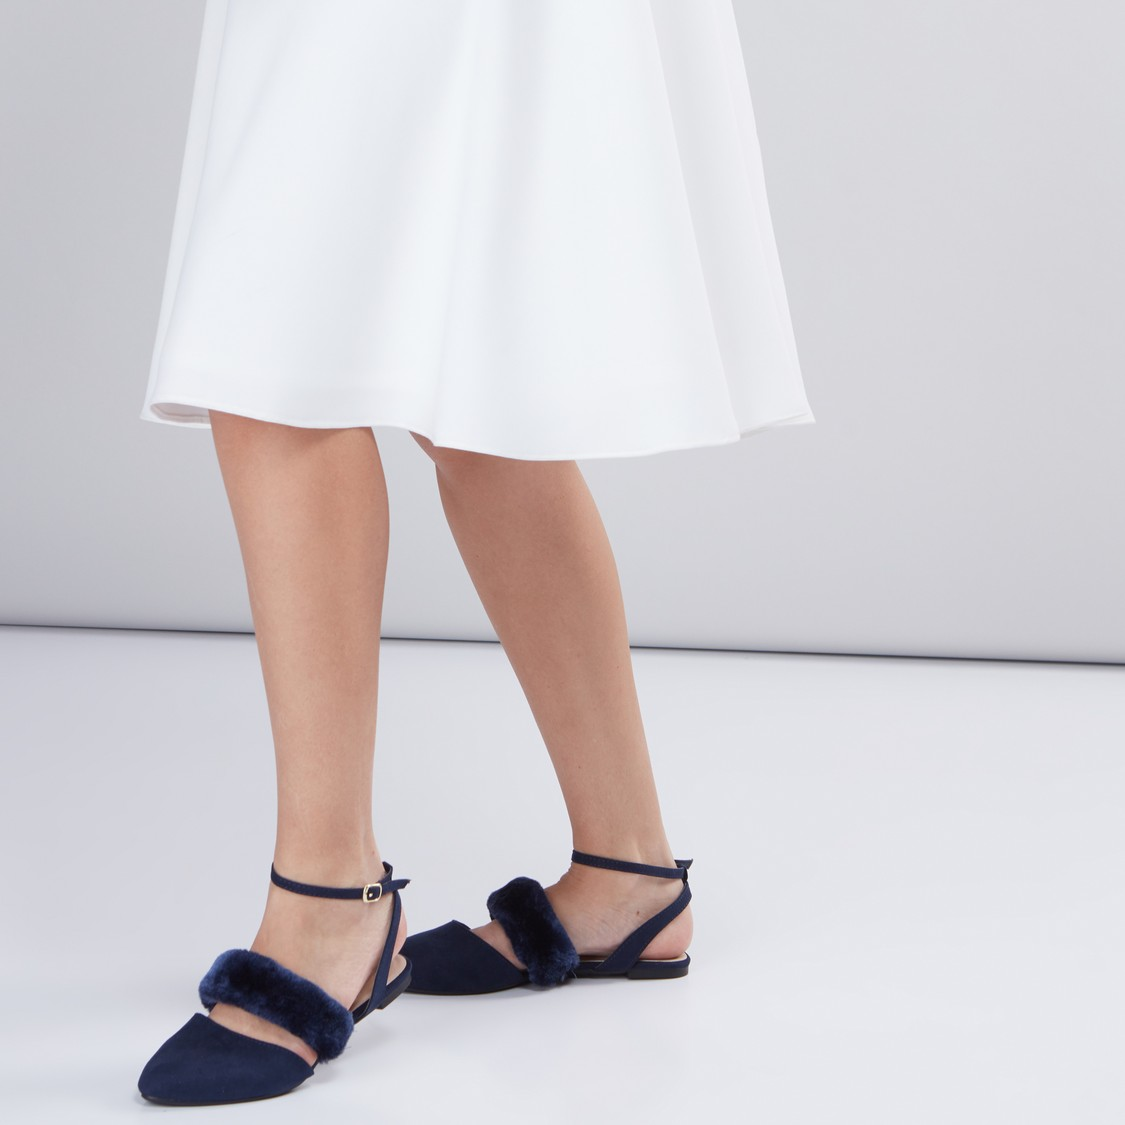 Plush Detail Sandals with Ankle Strap and Buckle Closure